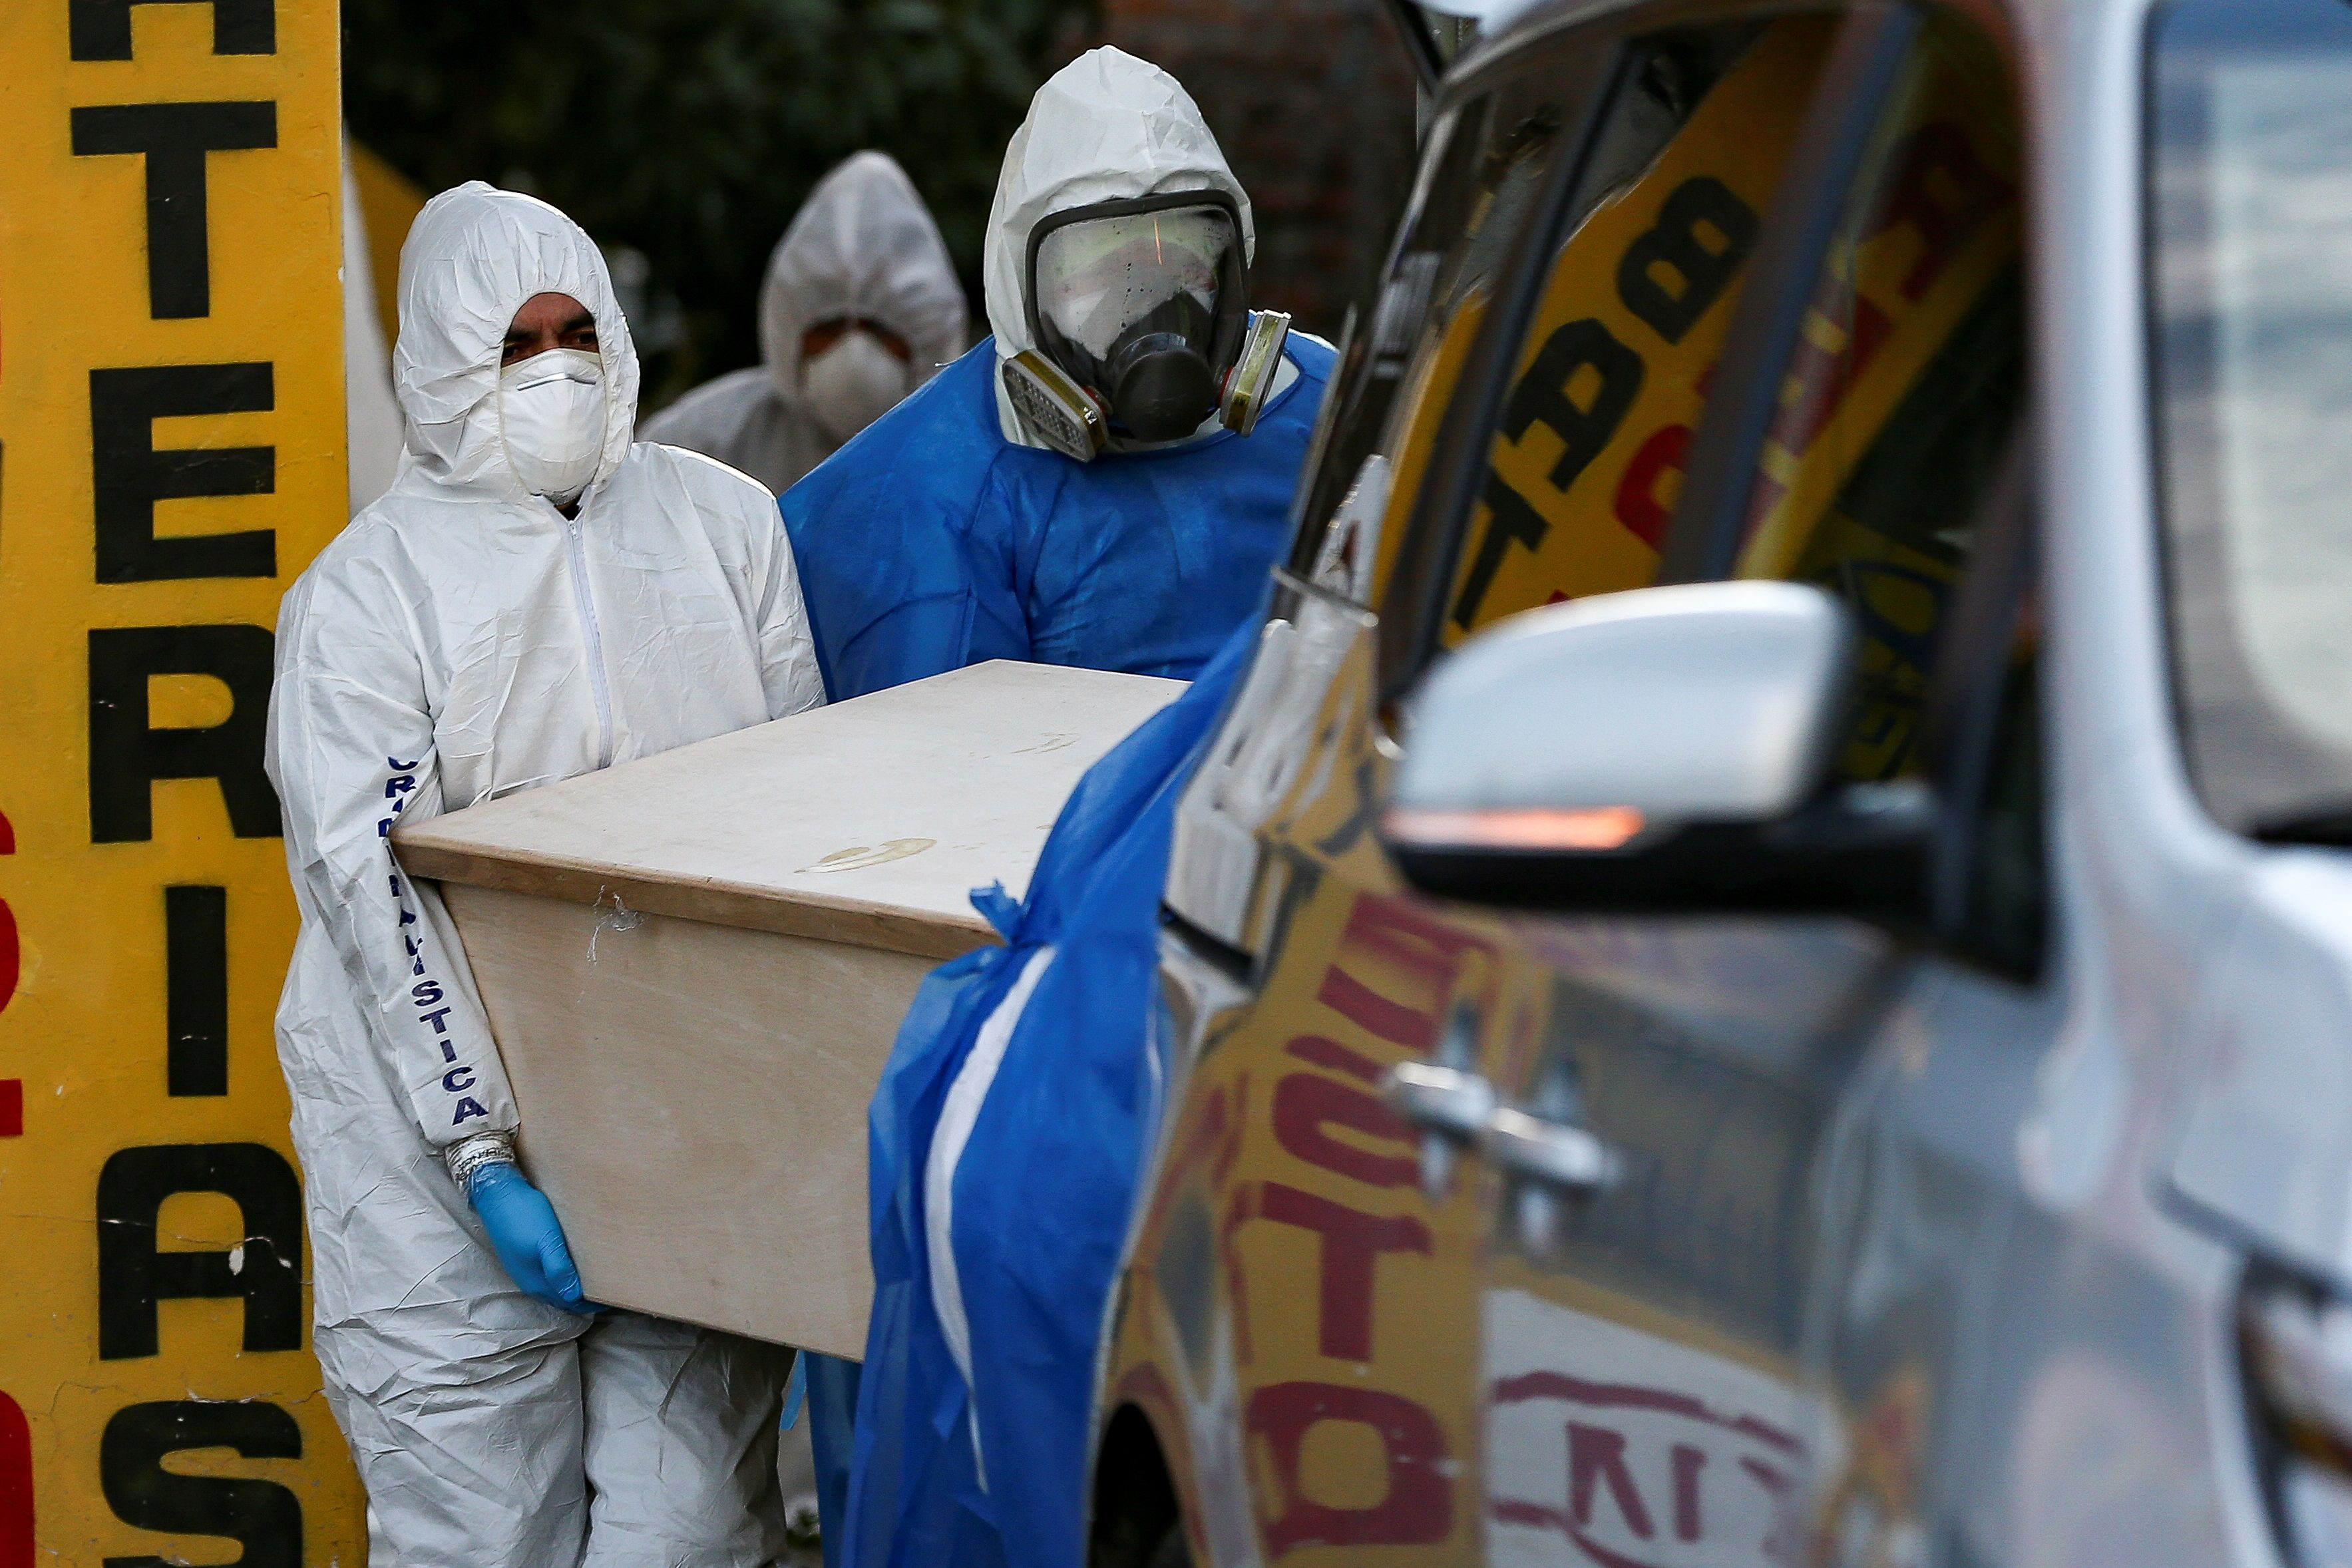 Police and funeral staff remove the body of a person said to have died from Covid-19 in a peripheral neighborhood of Quito, Ecuador, on May 7.